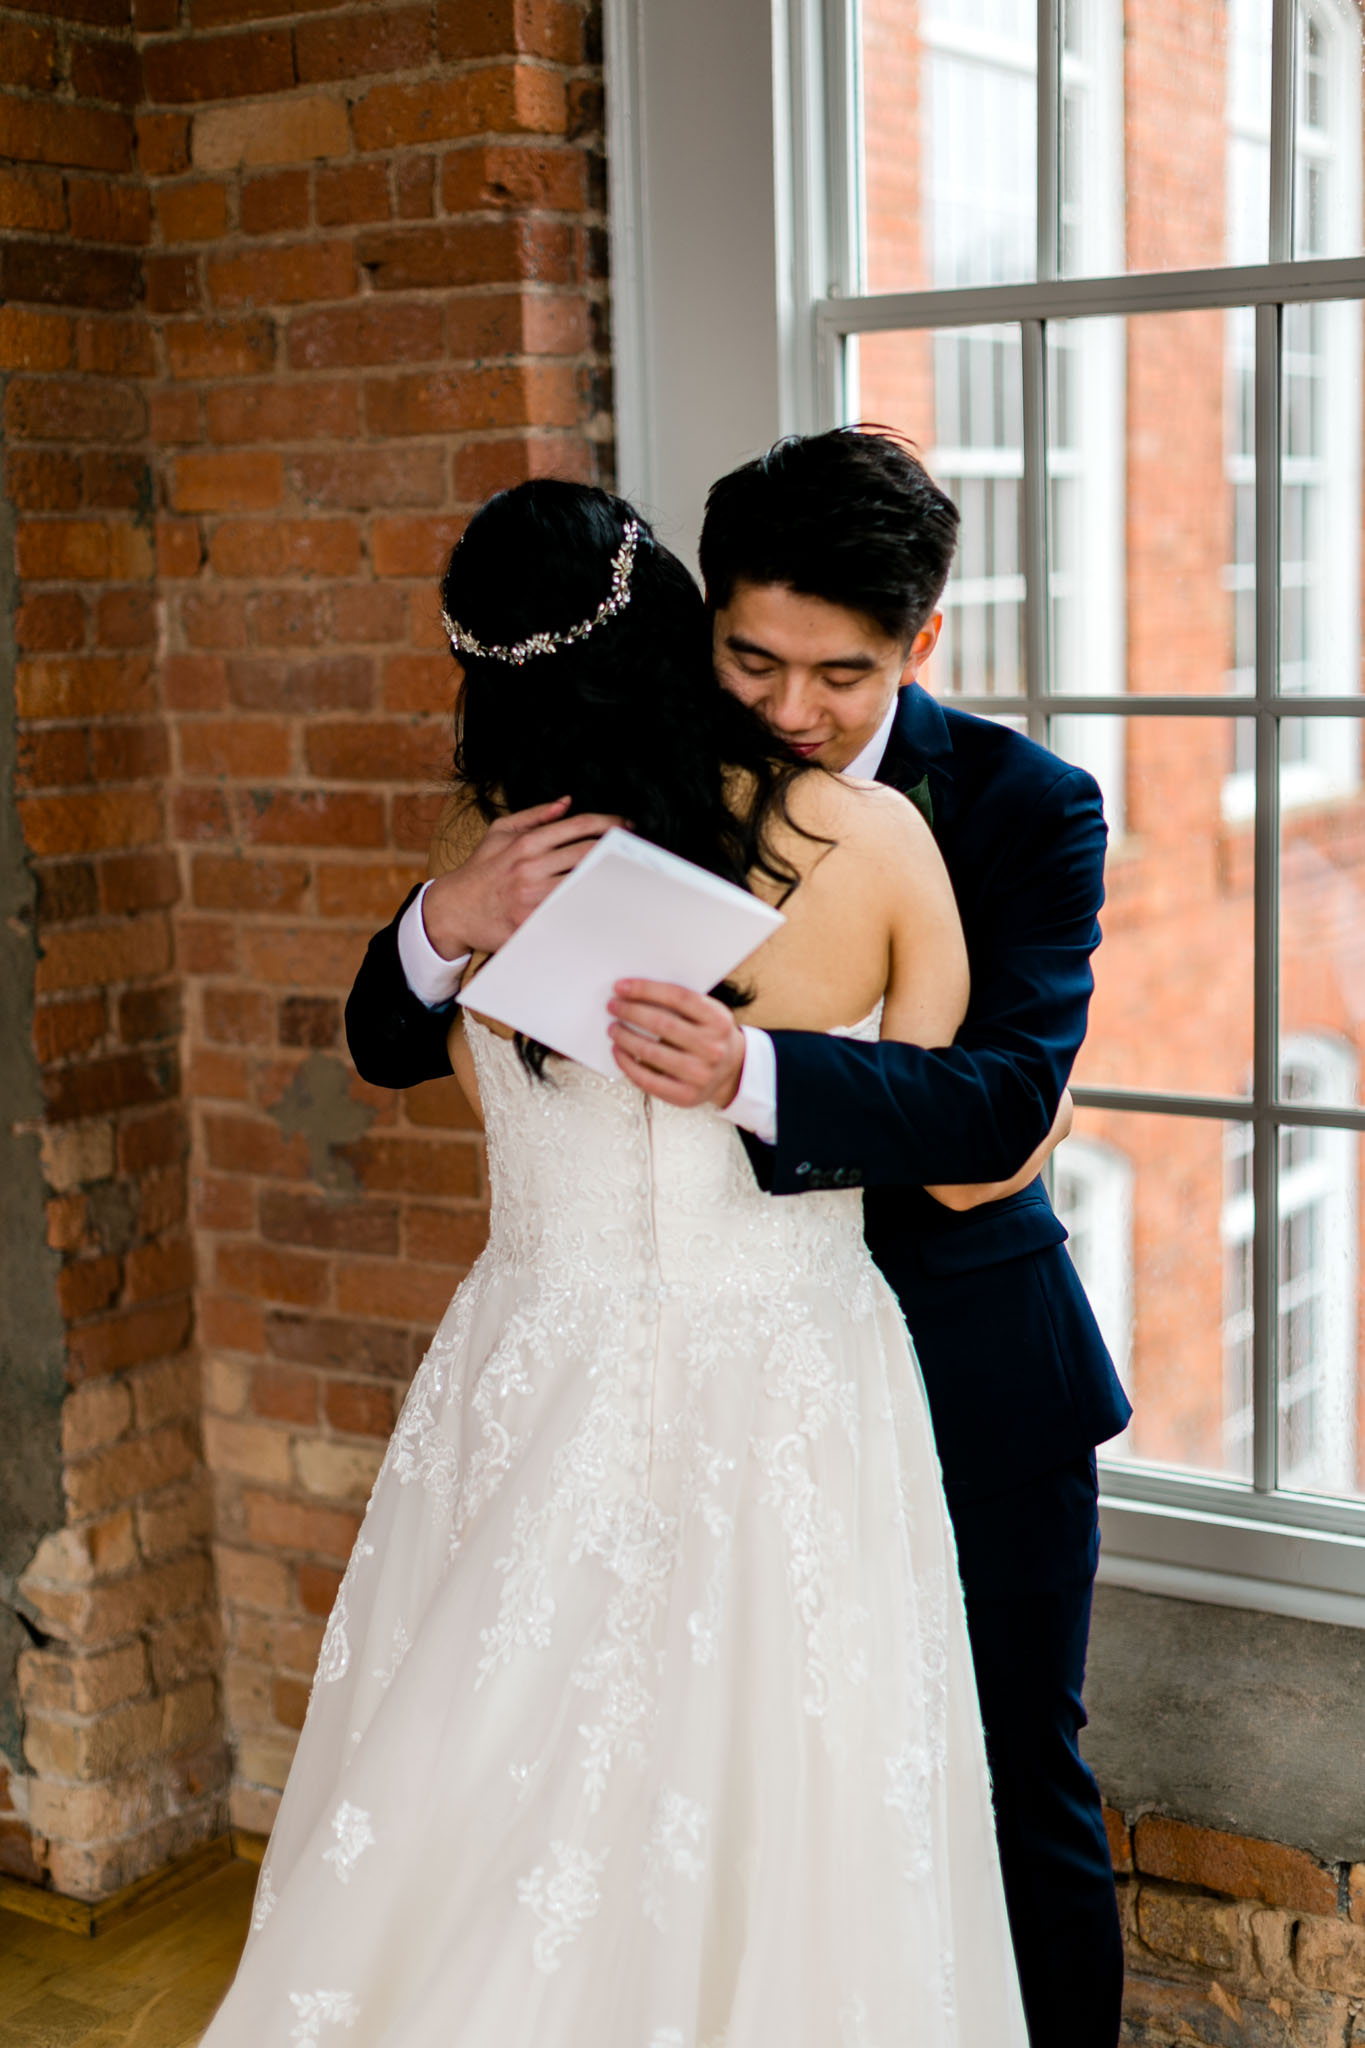 Groom hugging bride | Durham Wedding Photographer | The Cotton Room | By G. Lin Photography